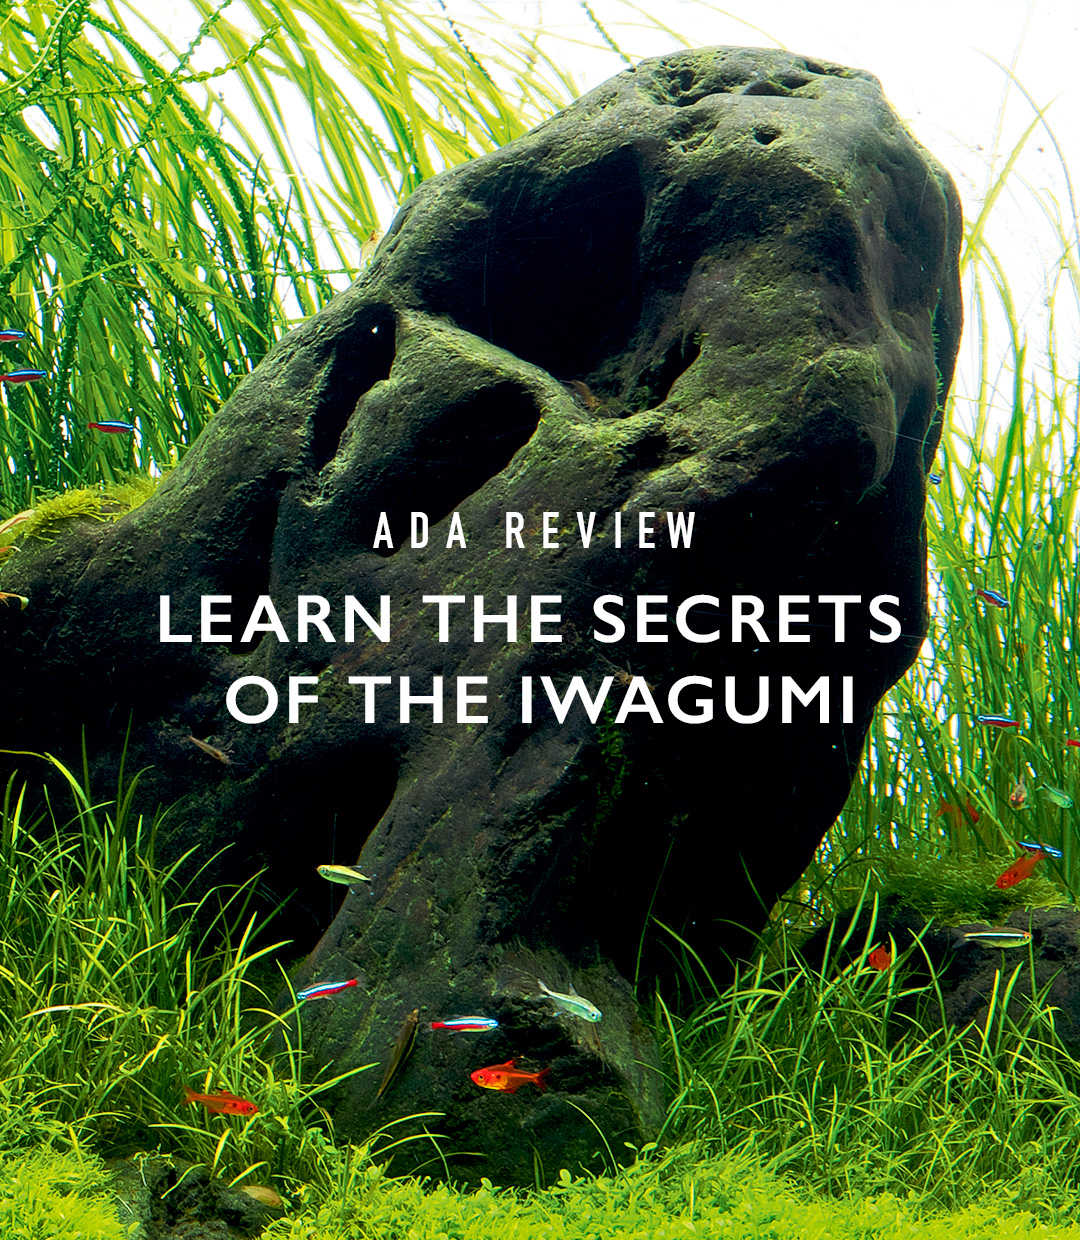 ADA Review 'Learn the Secrets of the Iwagumi'